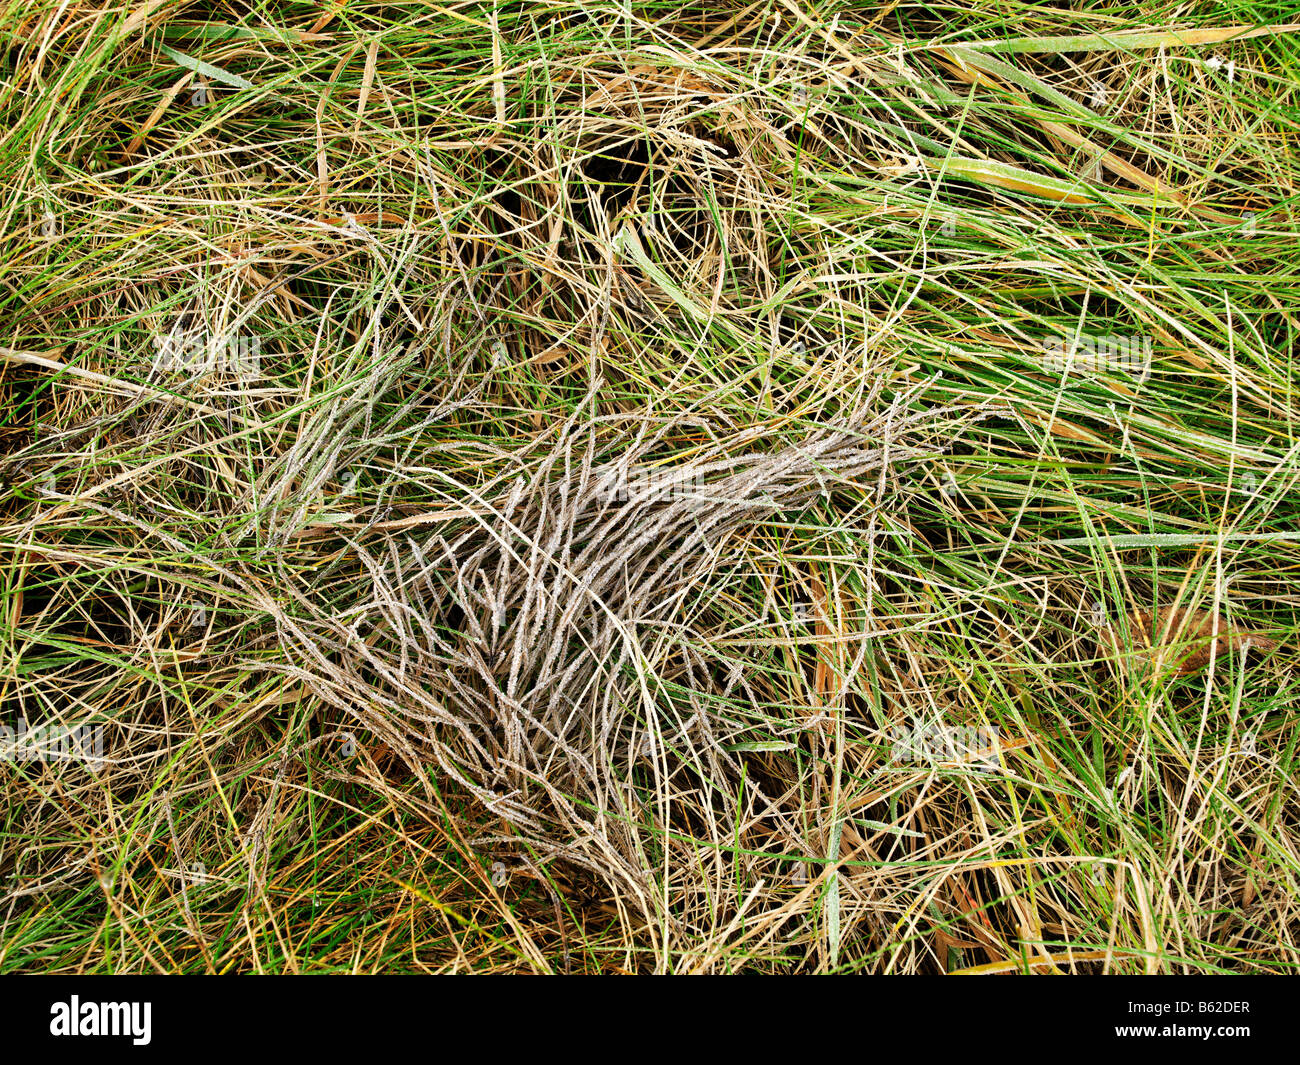 close up of wild plants creating an abstract pattern - Stock Image